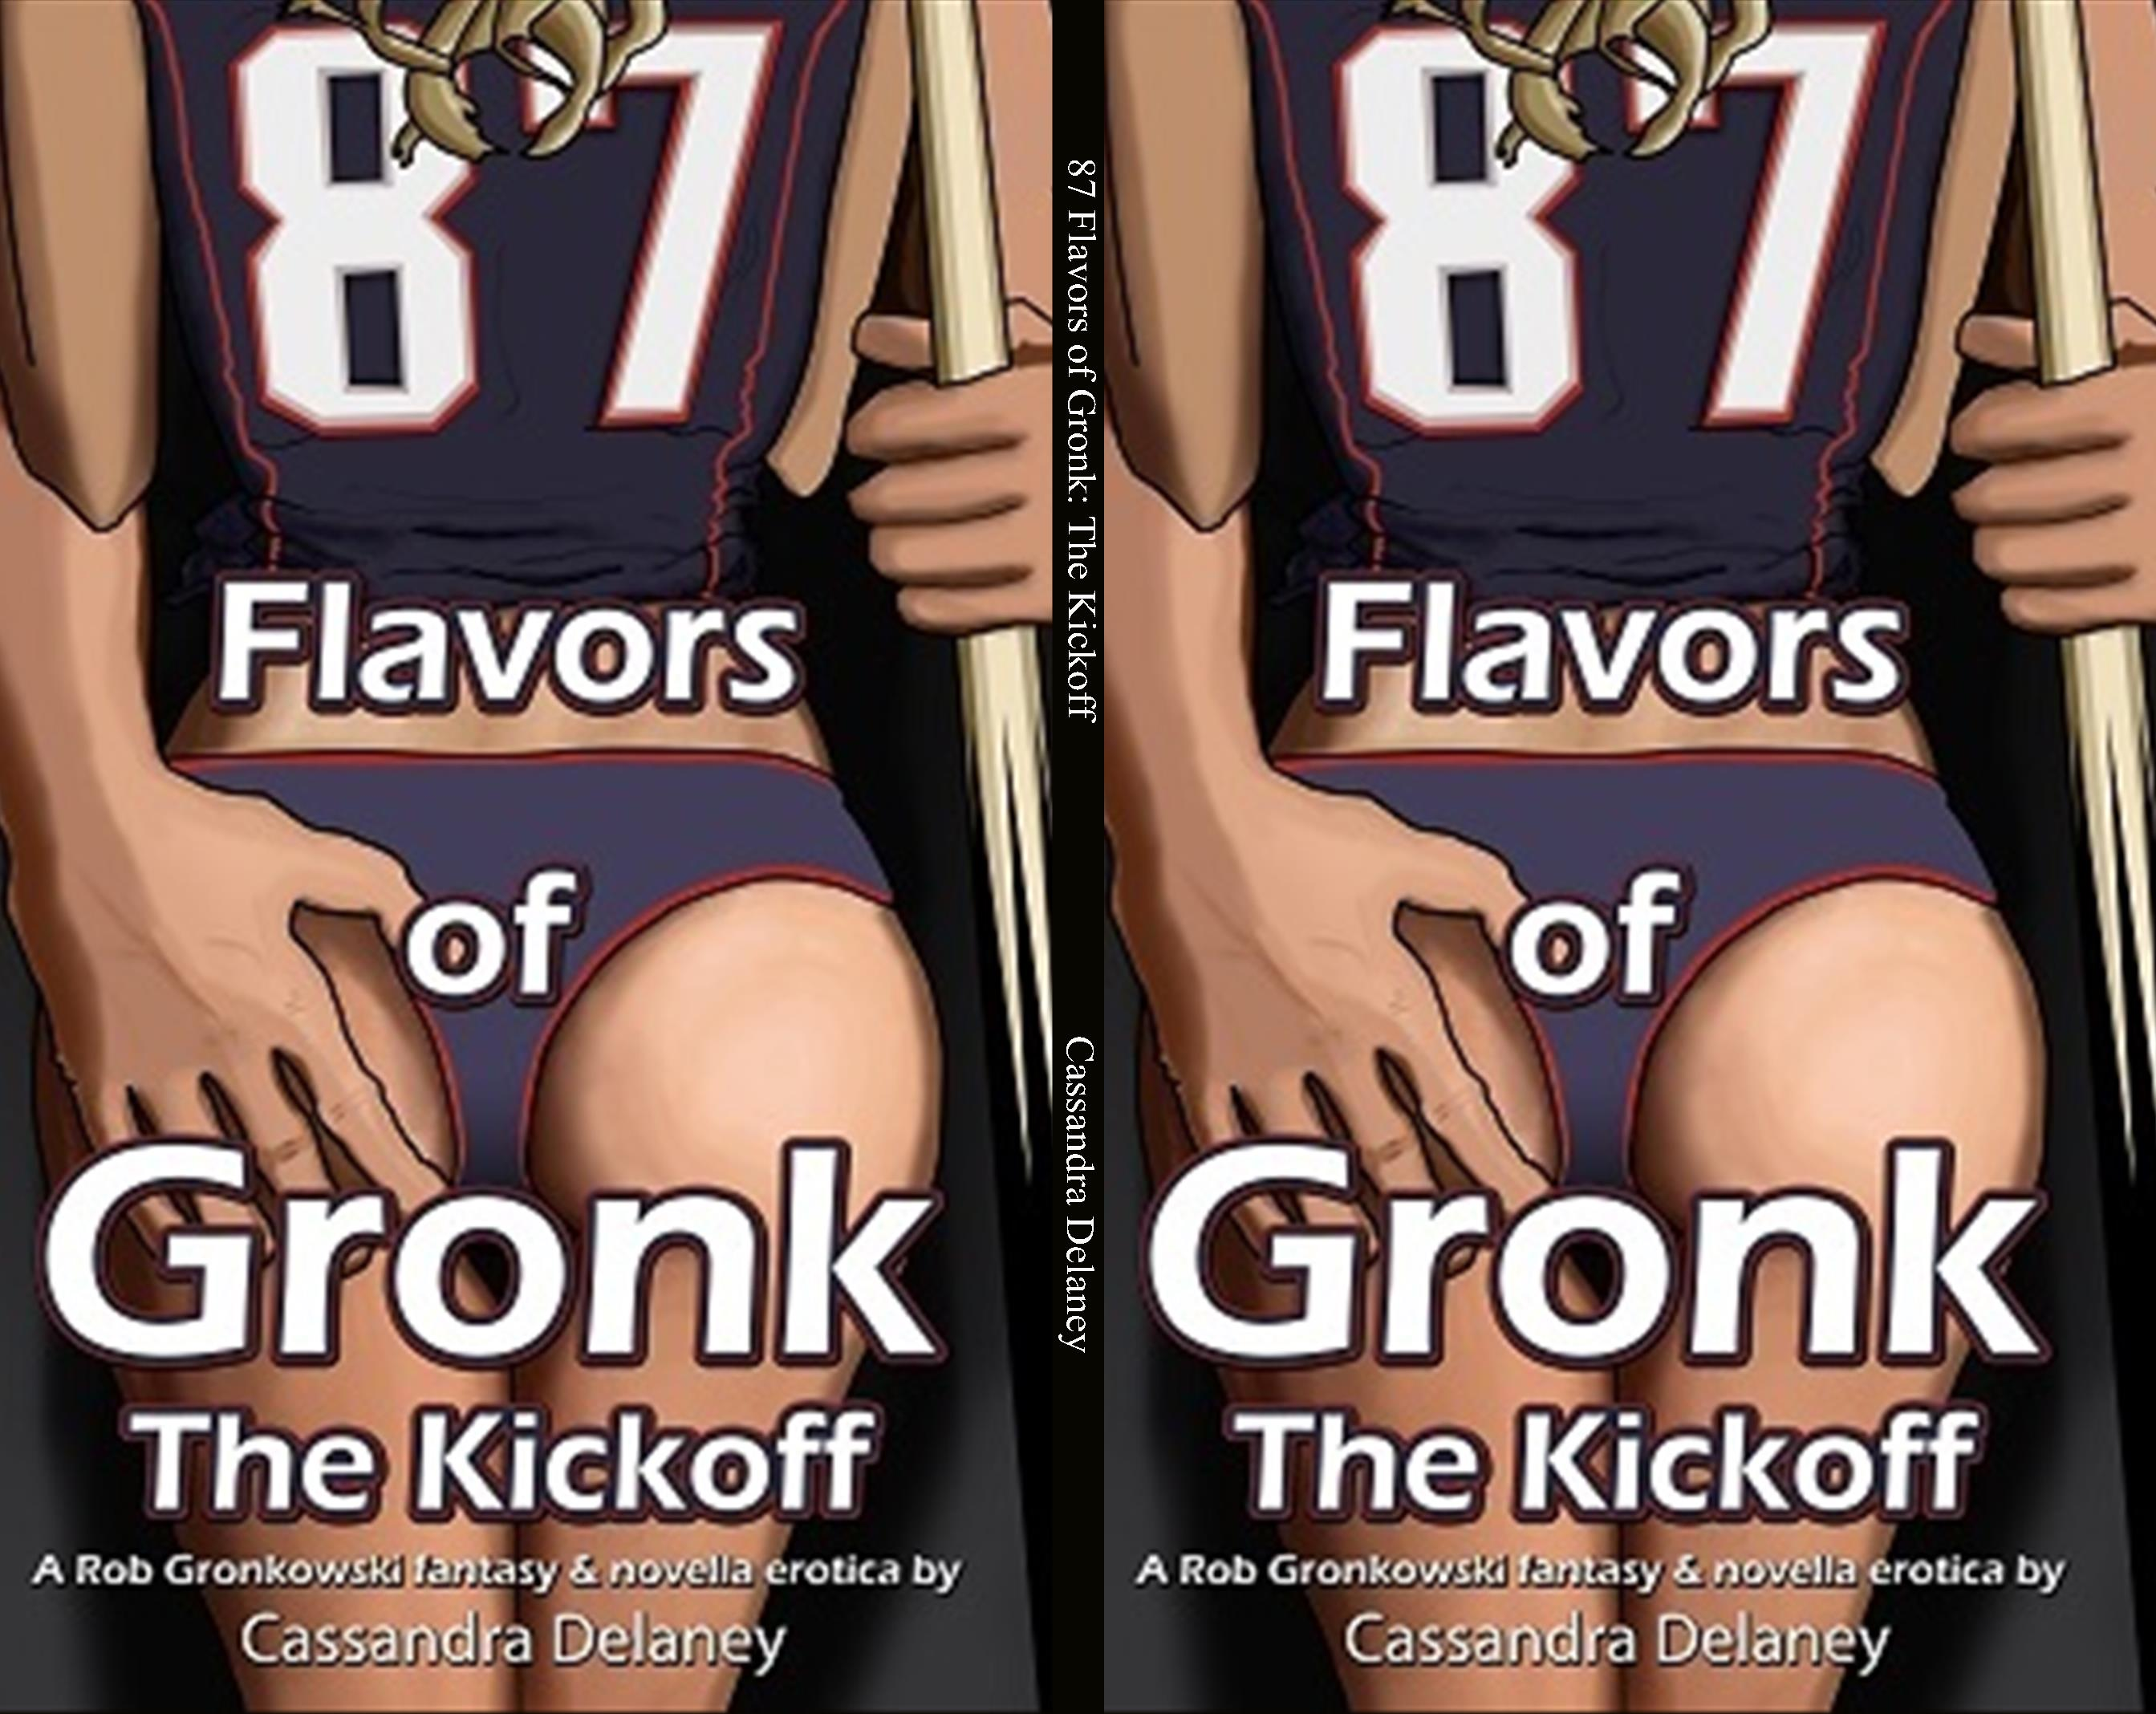 87 Flavors of Gronk: The Kickoff cover image